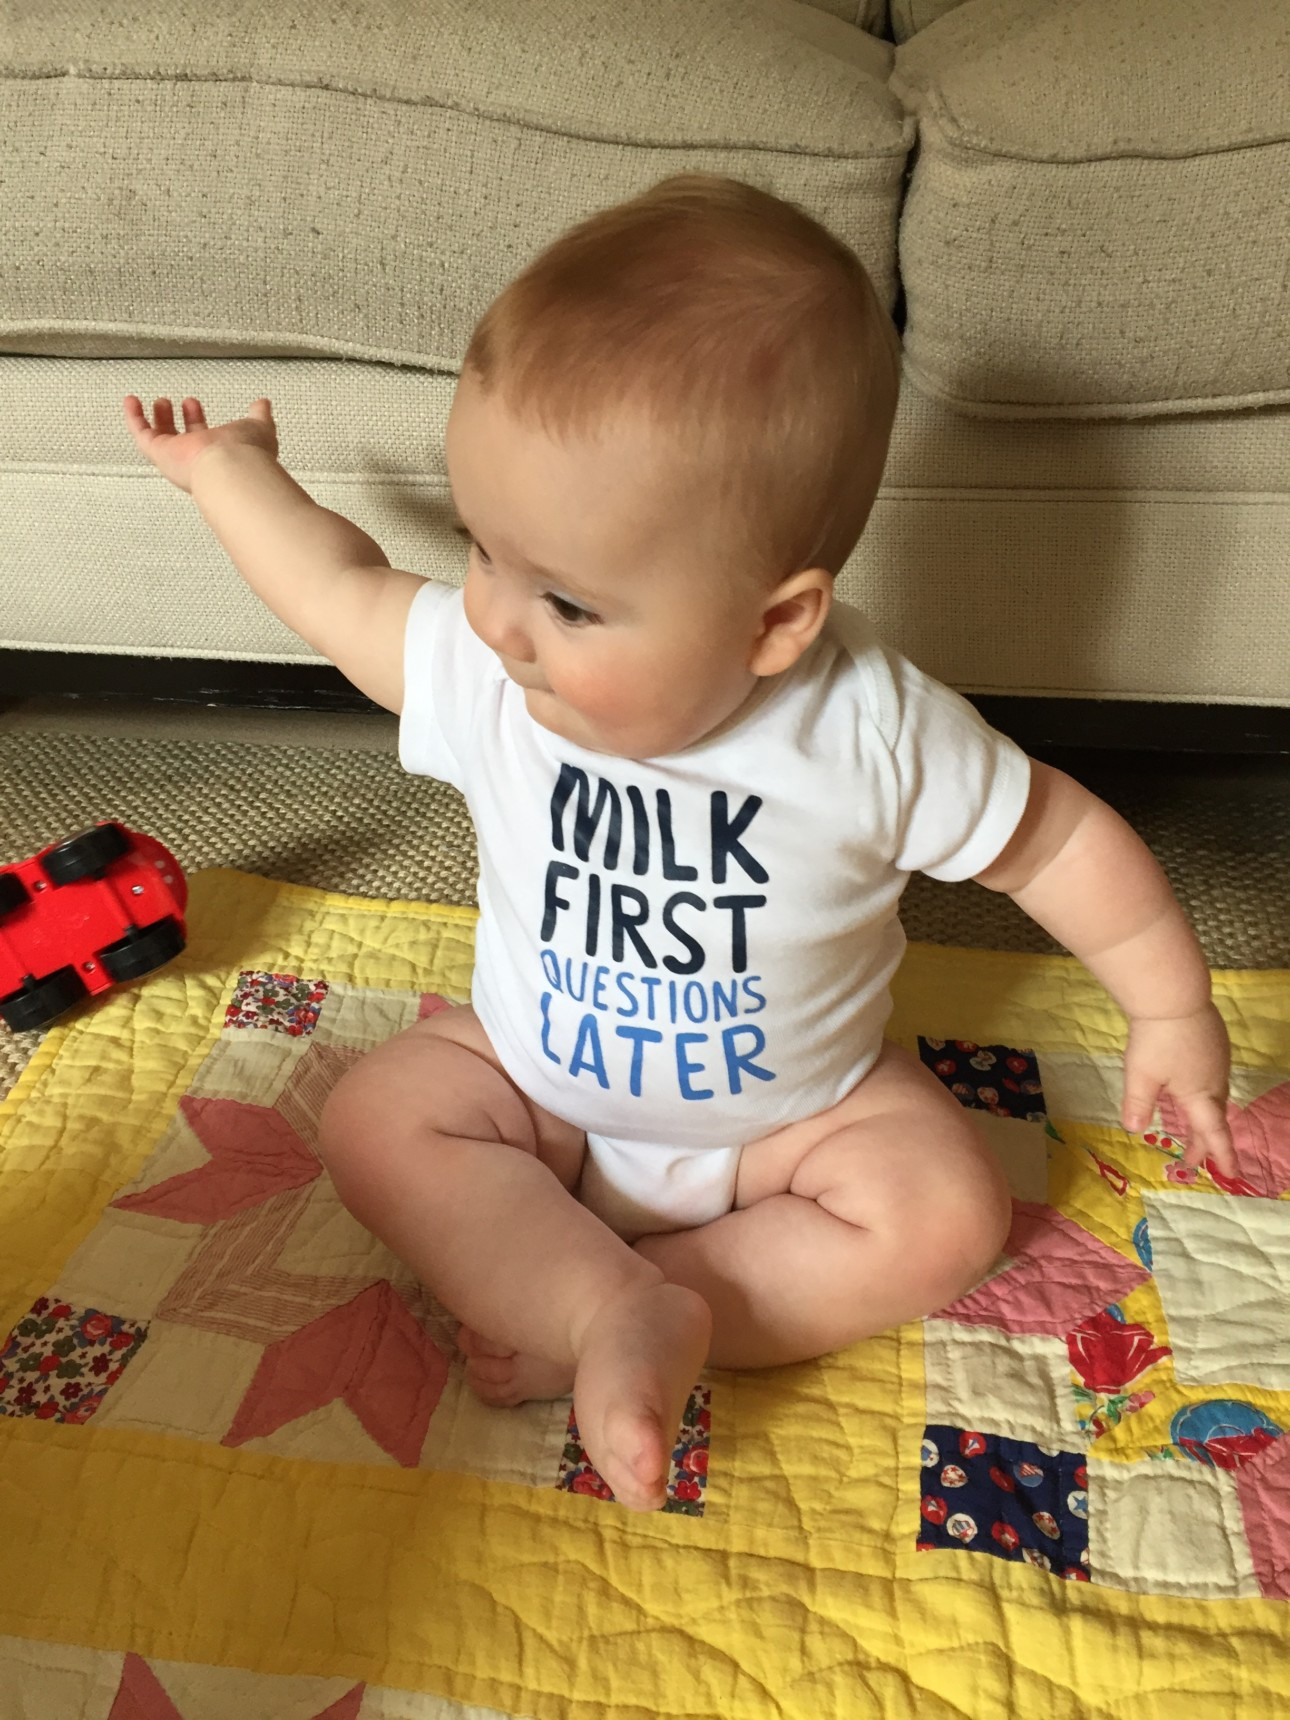 Mom's Best for Breastfeeding - Milk First Questions Later